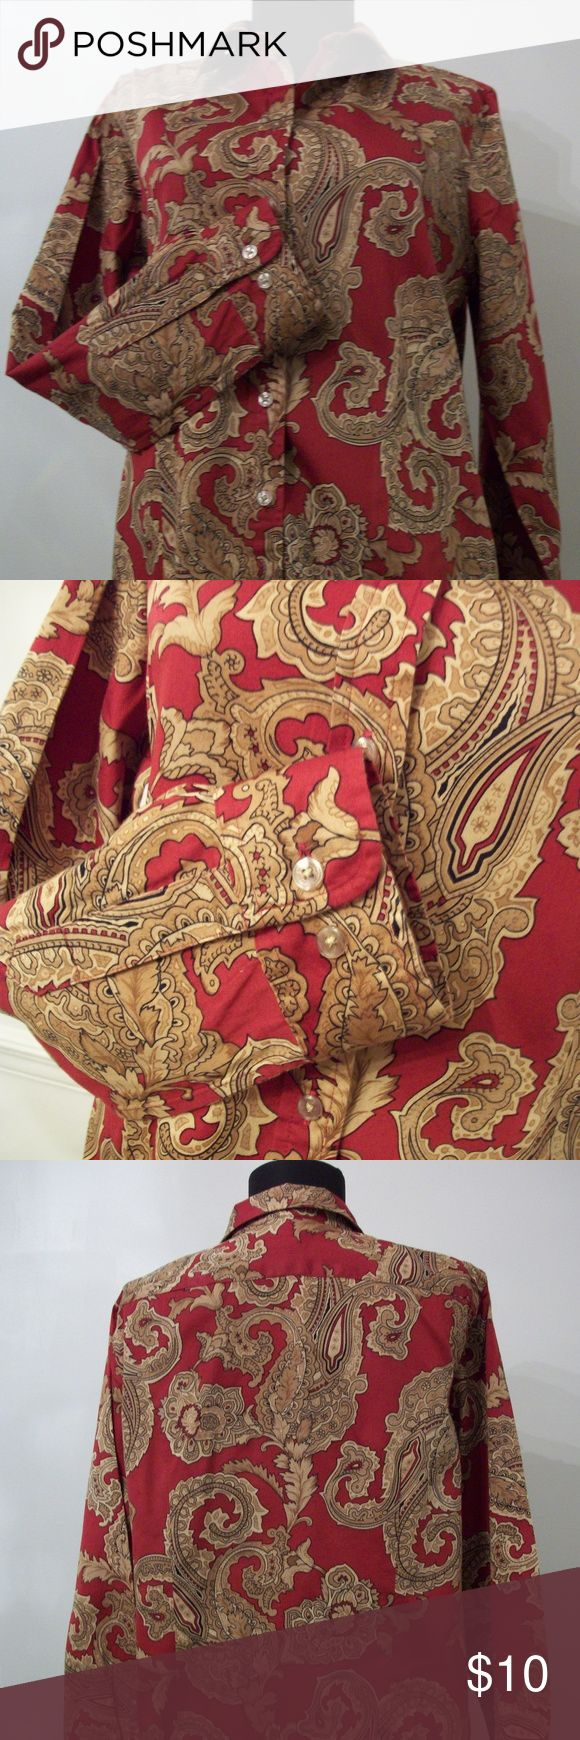 "Jones New York Signature Misses Petite Shirt Jones New York Signature Misses Shirt in excellent, gently worn condition. 100% Cotton. Burgundy shirt with Paisley motif pattern accents in shades of old and brown gold. Measurements; Shoulder to Shoulder 15"", Sleeve length 23"", measurements from collar from the top of the hem 25"", bust measurements 38"". Bust measurements taken while shirt was laid flat on hard surface.  Size PL (14P - 16P). From a smoke free, pet free home. Jones New York Tops…"